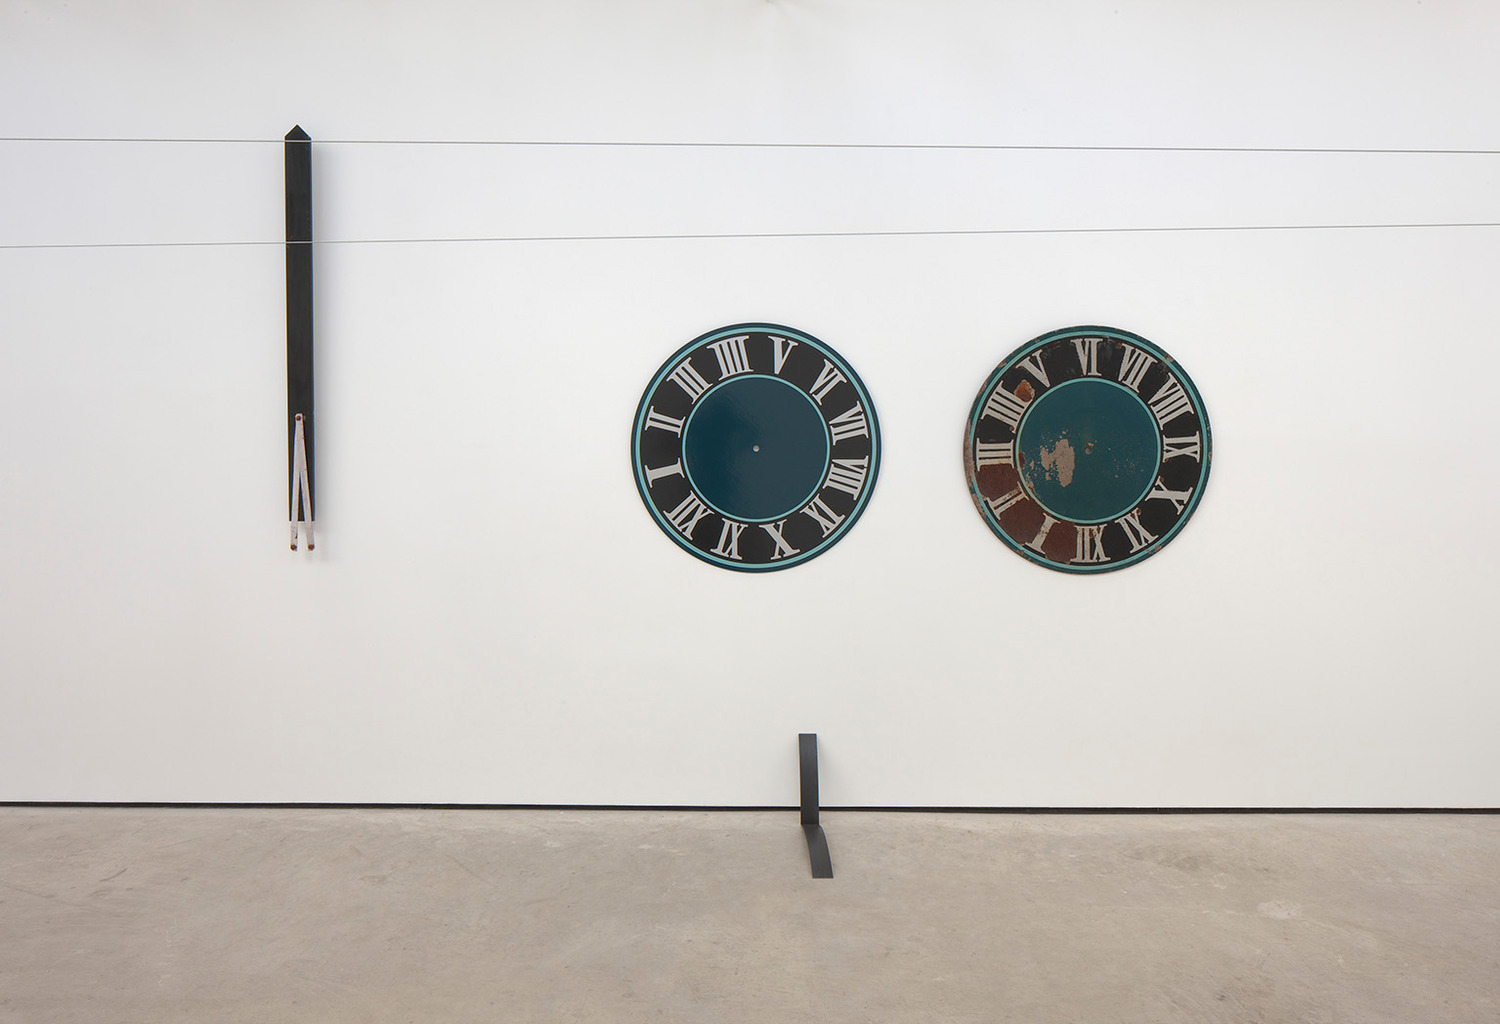 Katja Strunz, Dynamic Fatigue Test (system integrators), 2012, Steel, duroplast, varnish, 164.5 x 11 x 7.5 cm (left), 98 x 234 x 5 cm (right), 32 x 7.5 x 60 cm (bottom)